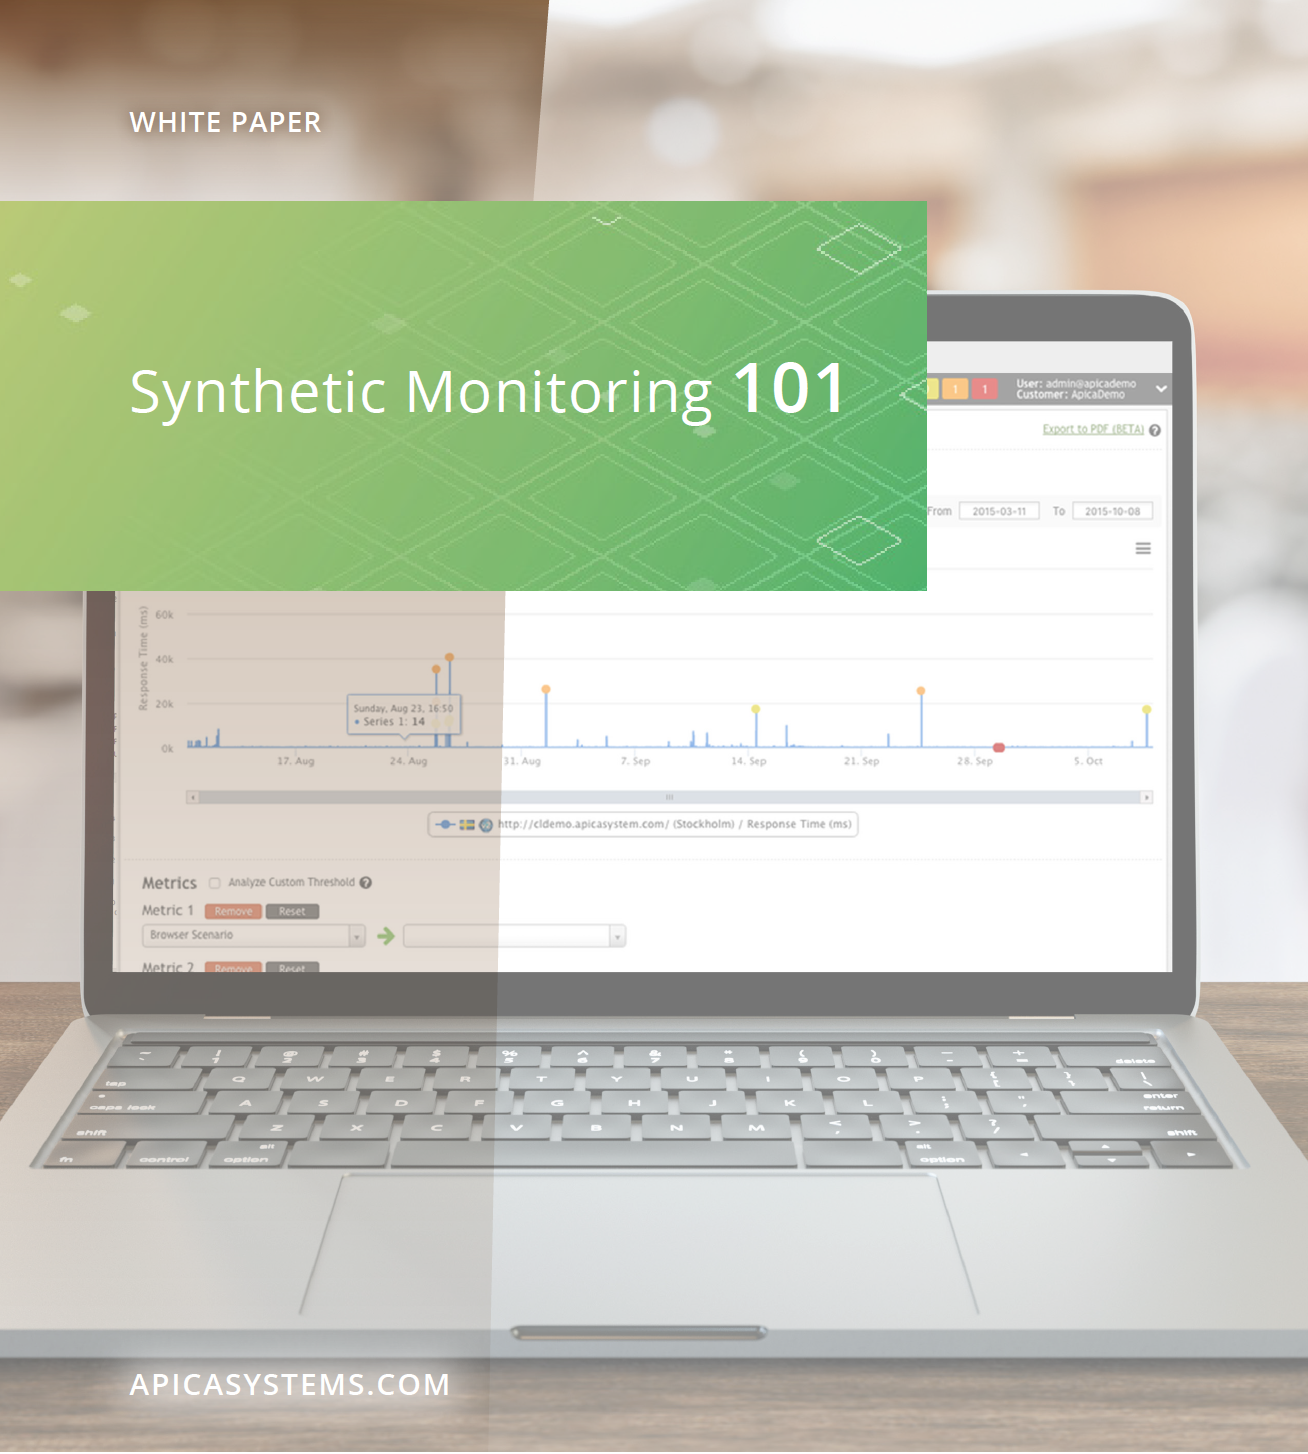 Synthetic monitoring 101